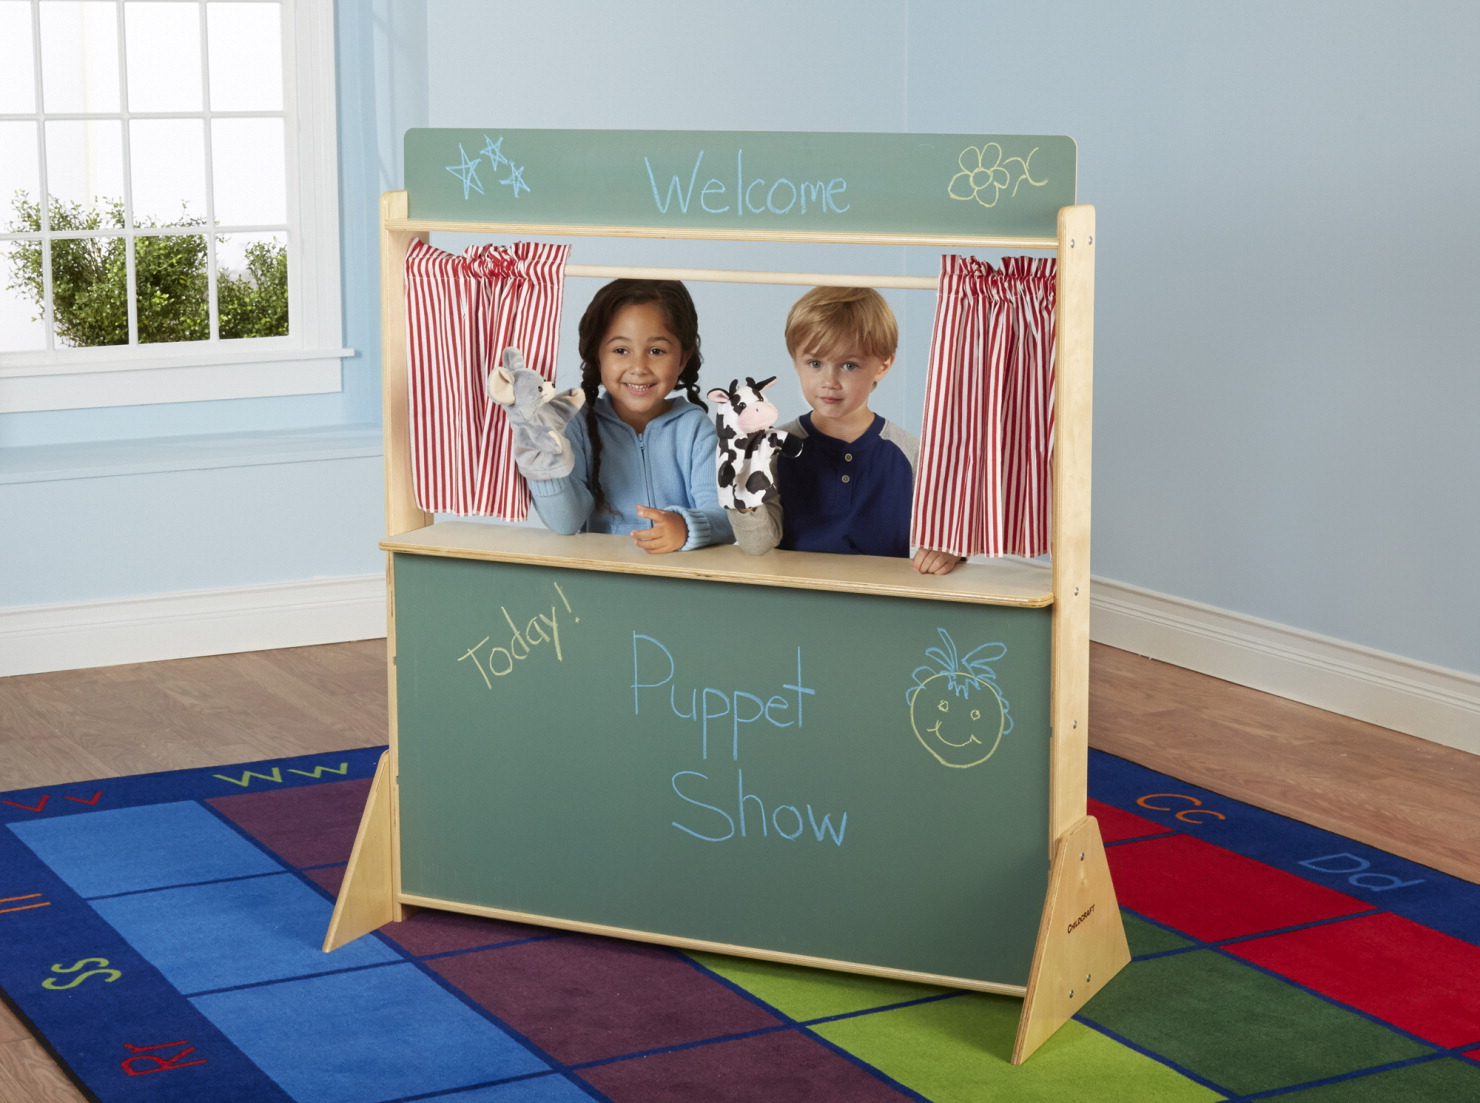 Childcraft Play Store and Puppet Theatre, 45-1/2 x 19-1/2 x 50-3/4 Inches